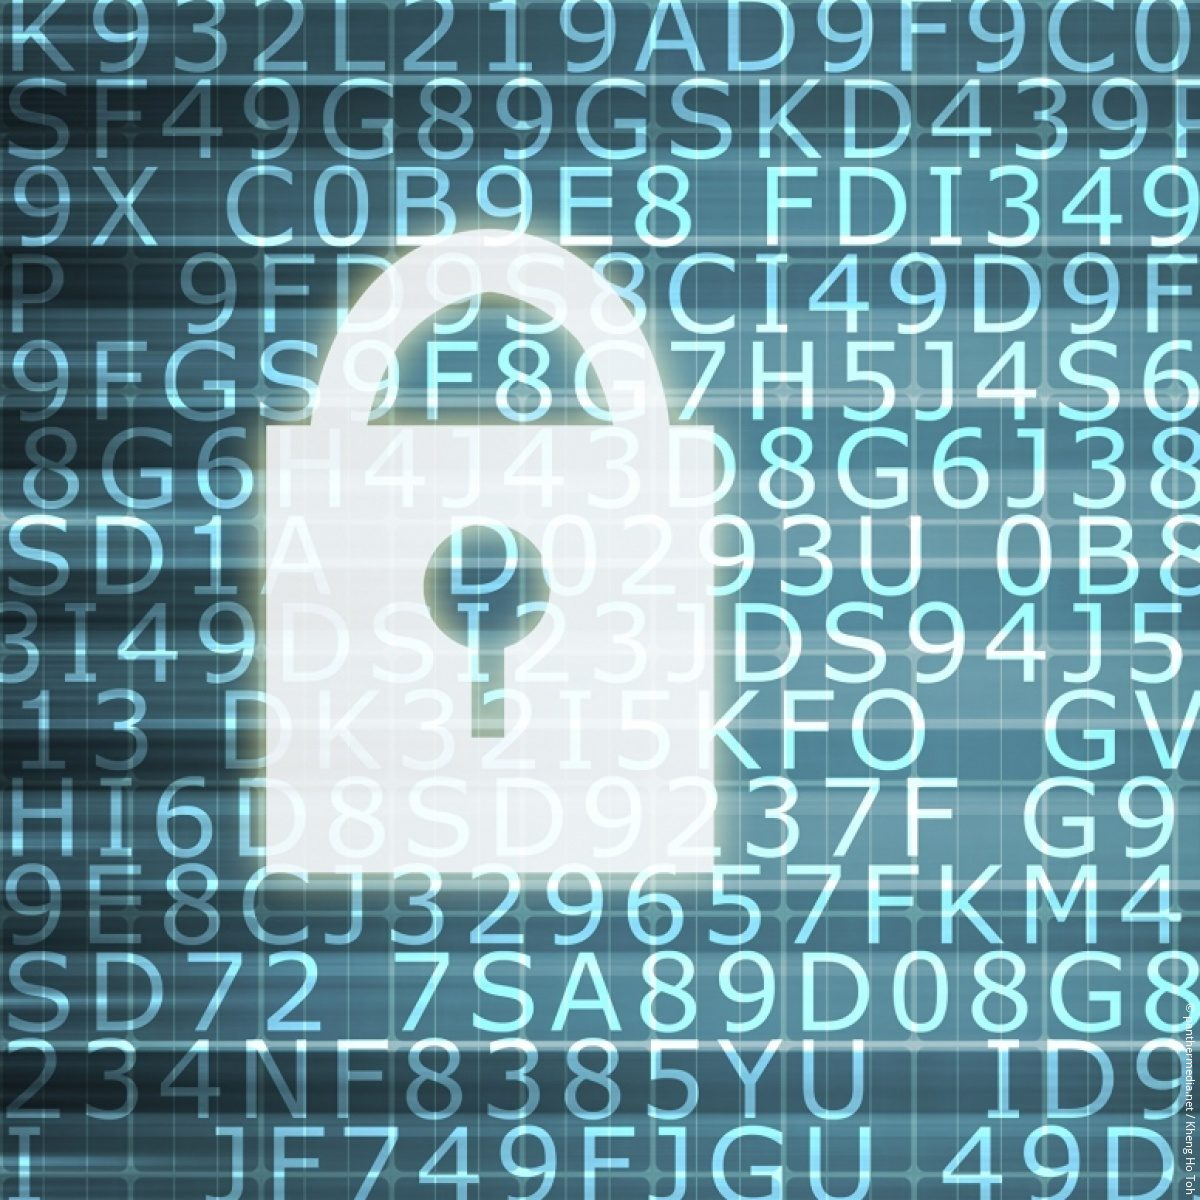 Cybersecurity: New chip stops attacks before they start